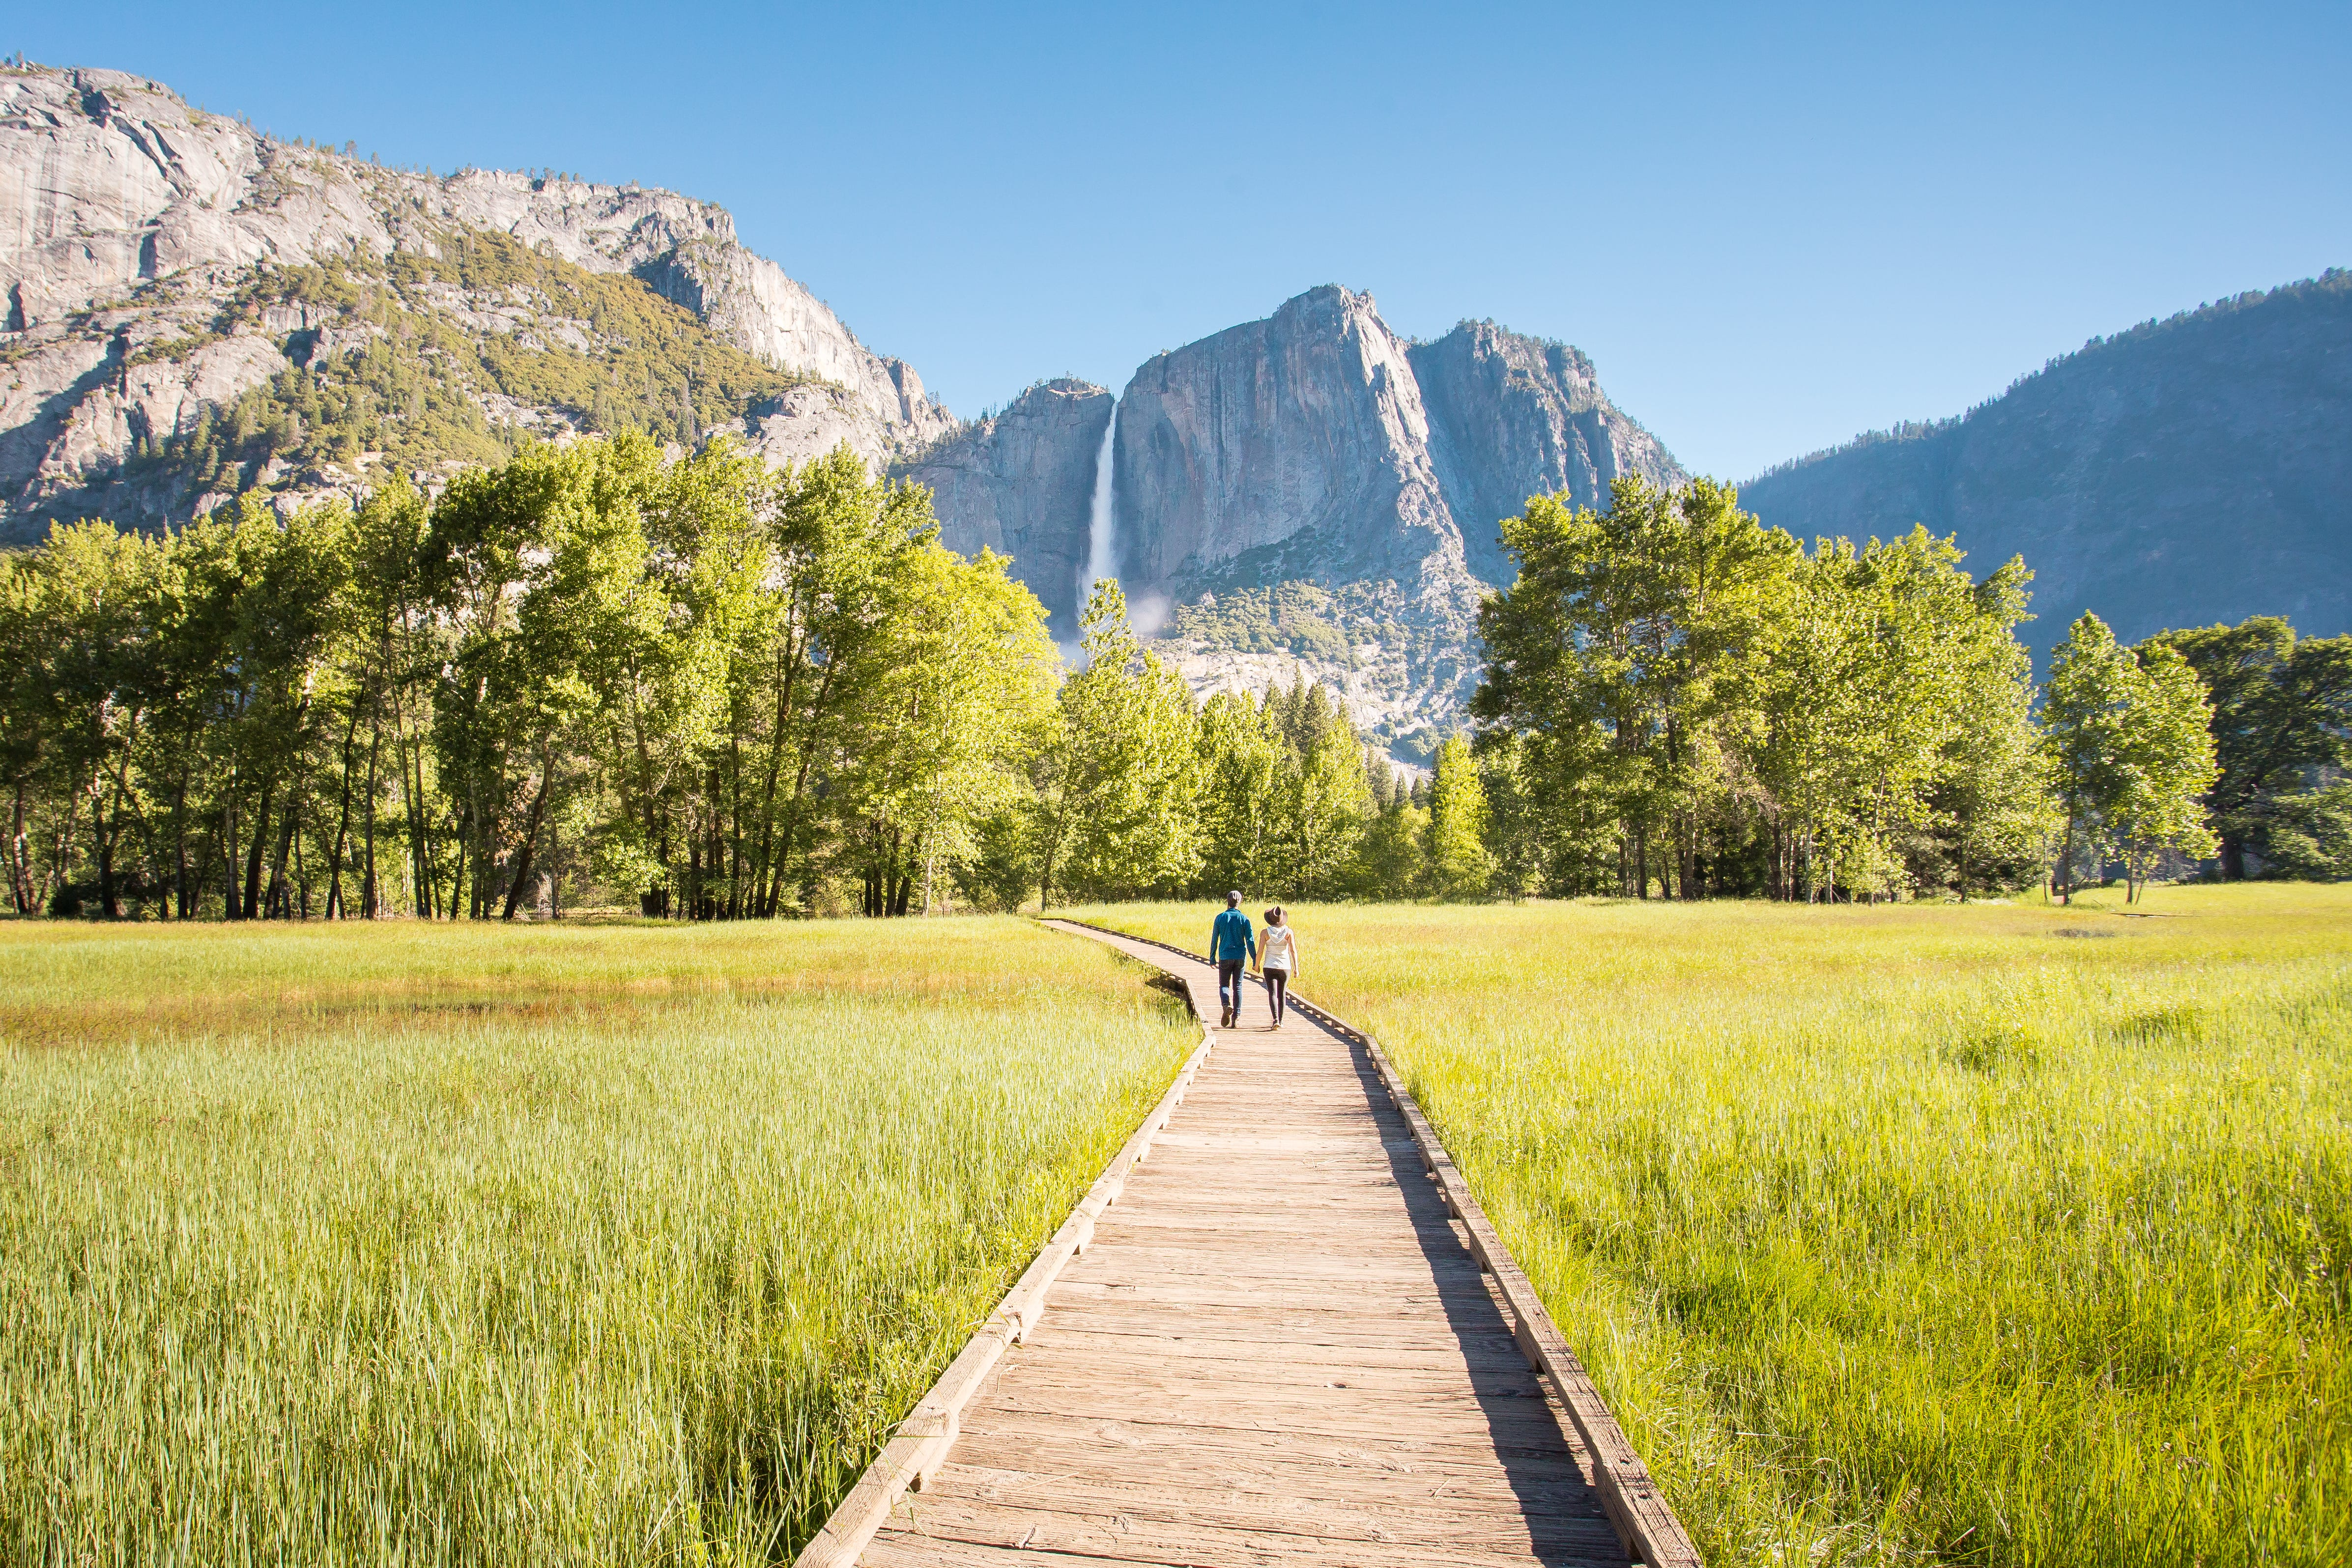 New $10M visitor center on tap at Yosemite National Park